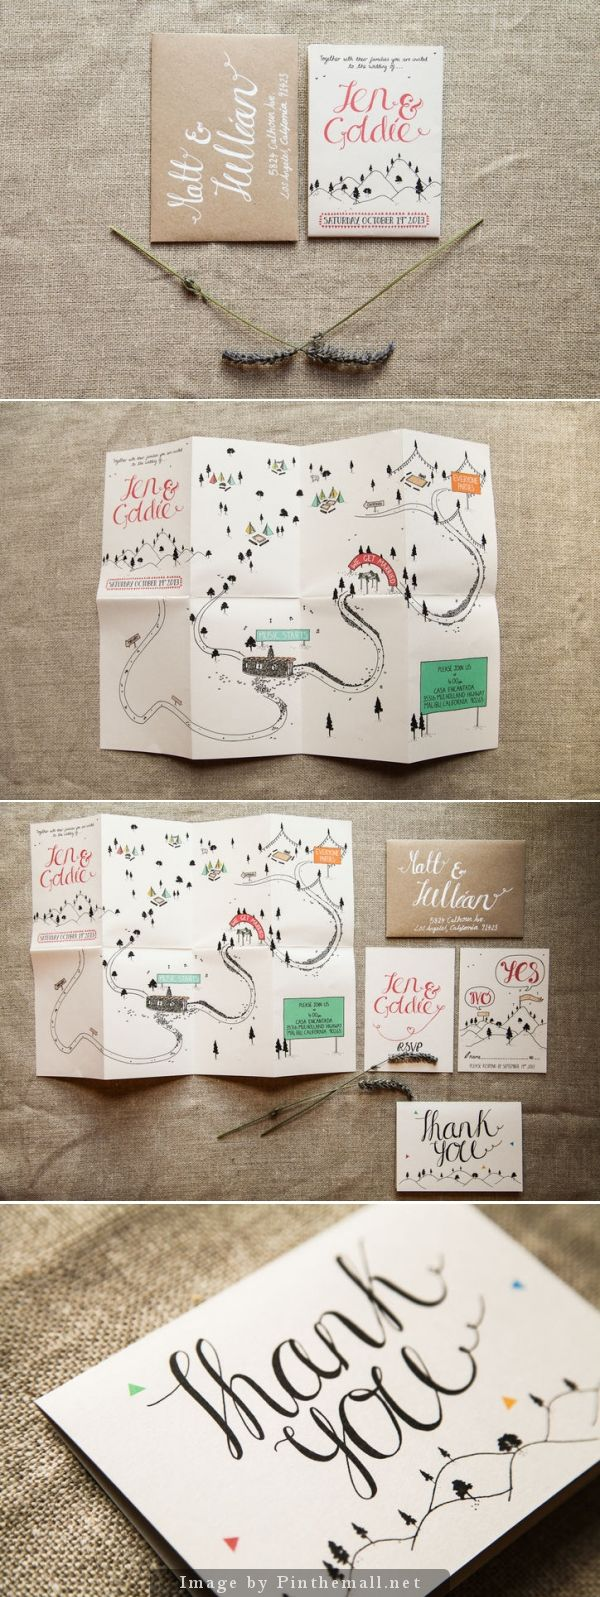 Light and airy feminine wedding invitation, thank you card, and map. Pink hand lettering on white paper w/ thin black lines for illustration & white ink on kraft paper. Accent colors of green, pink, blue & yellow used sparingly.